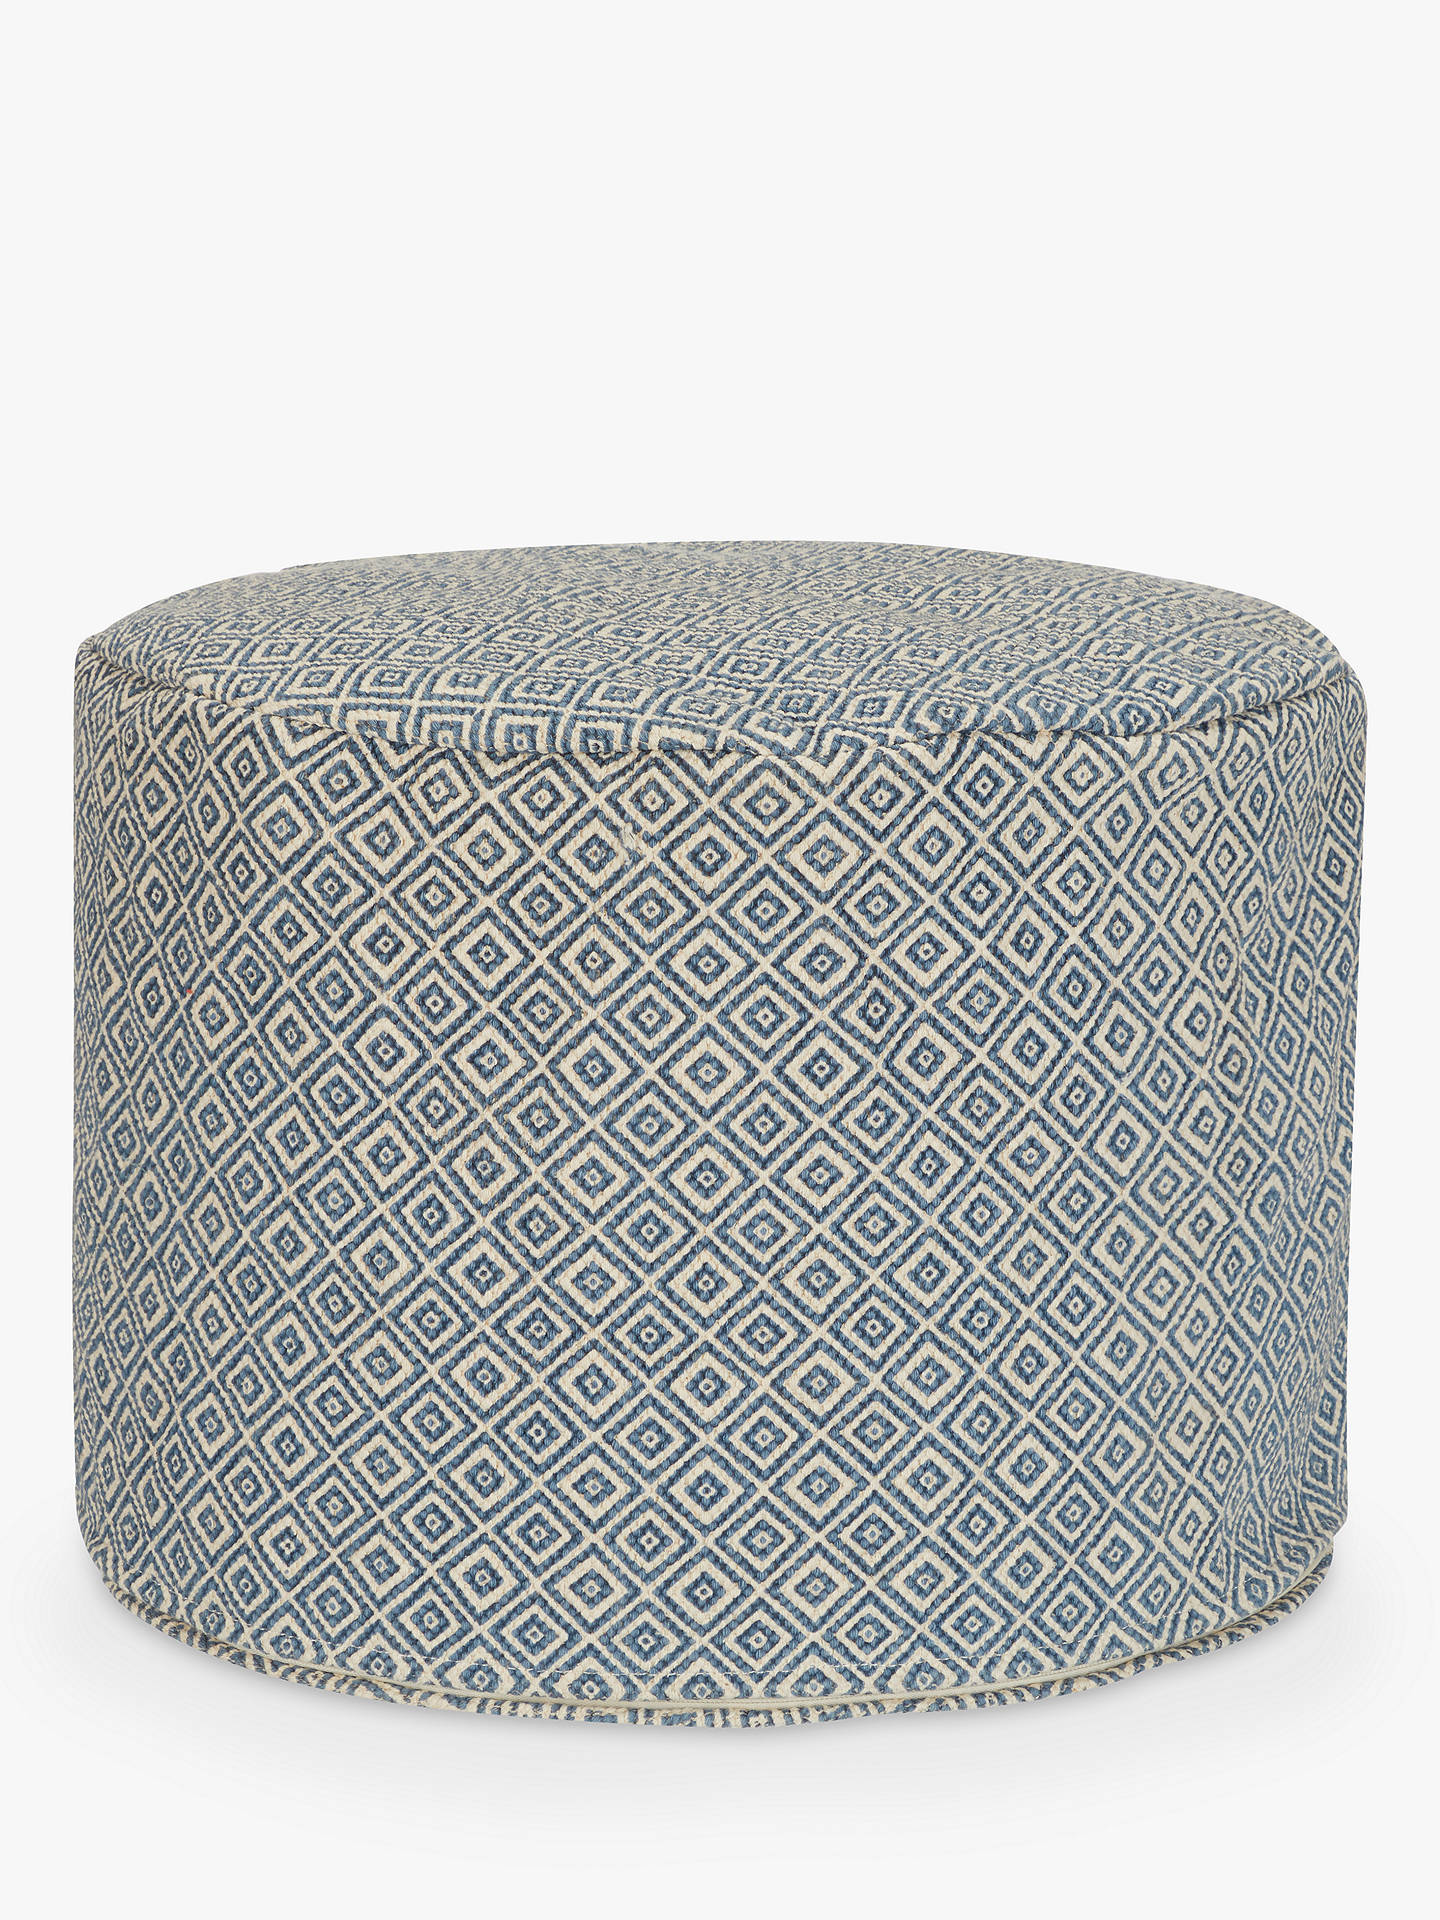 BuyJohn Lewis & Partners Diamond Round Pouffe, Blue Online at johnlewis.com